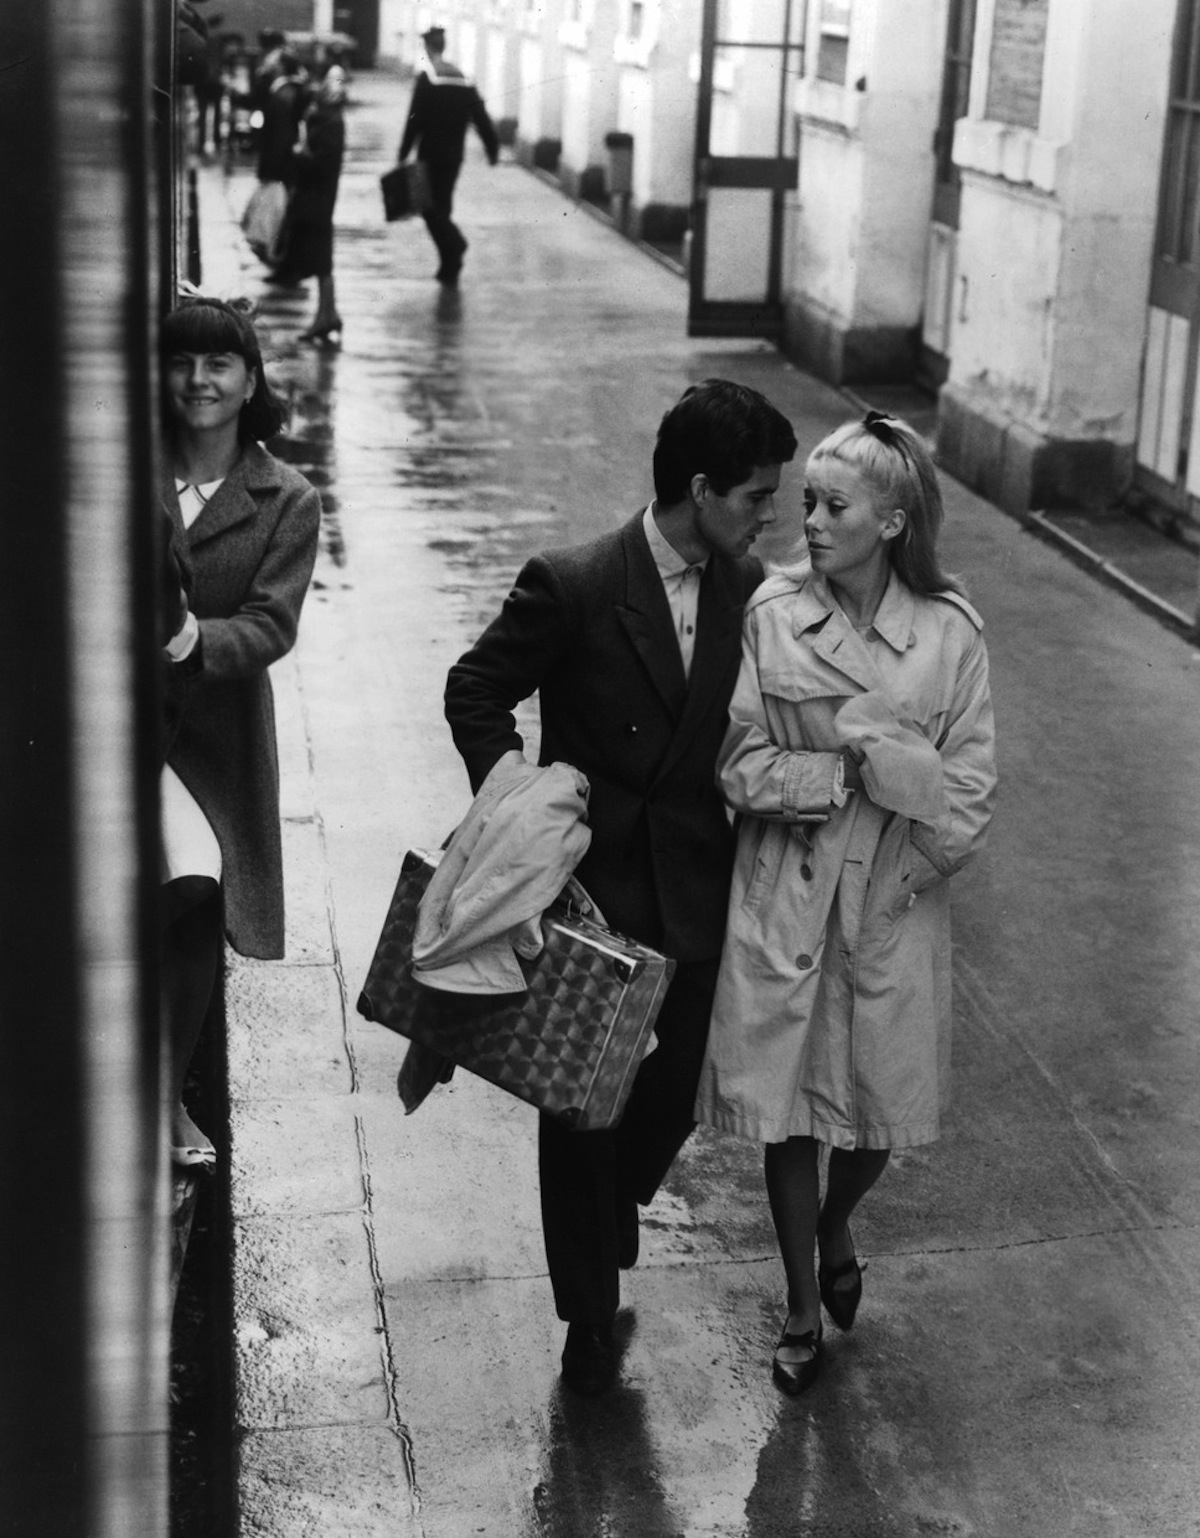 nino-castelnuovo-and-catherine-deneuve-walk-down-a-wet-sidewalk-in-a-scene-from-the-film-the-umbrellas-of-cherbourg-1964-photo-by-landau-releasing-organizationgetty-images